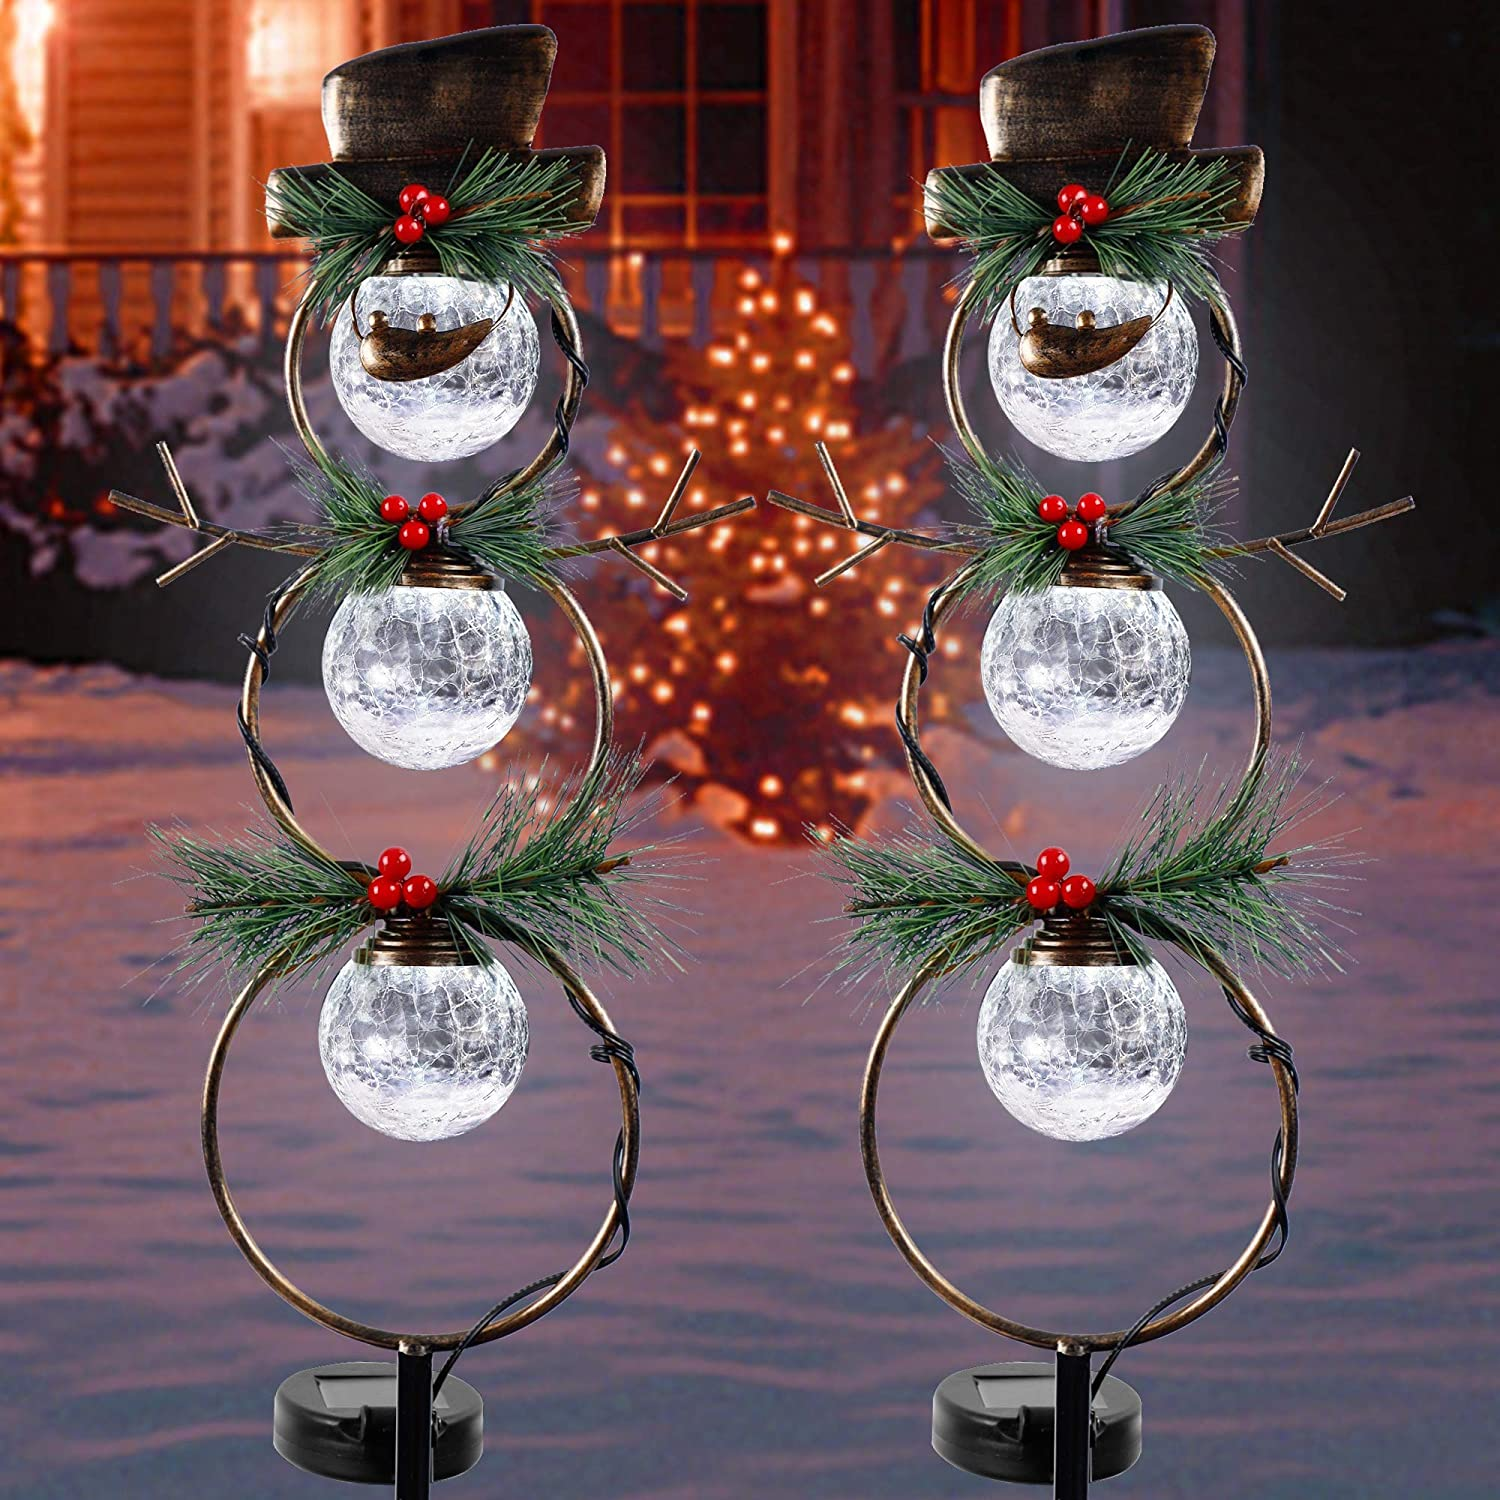 GUOOU Solar Christmas Yard Decorations, Outdoor LED Solar Powered Glass Ball Lights, Xmas Snowman Pathway Lights, Metal Solar Garden Stake Lights, Snowman Christmas Lawn Yard Ornament, Set of 2